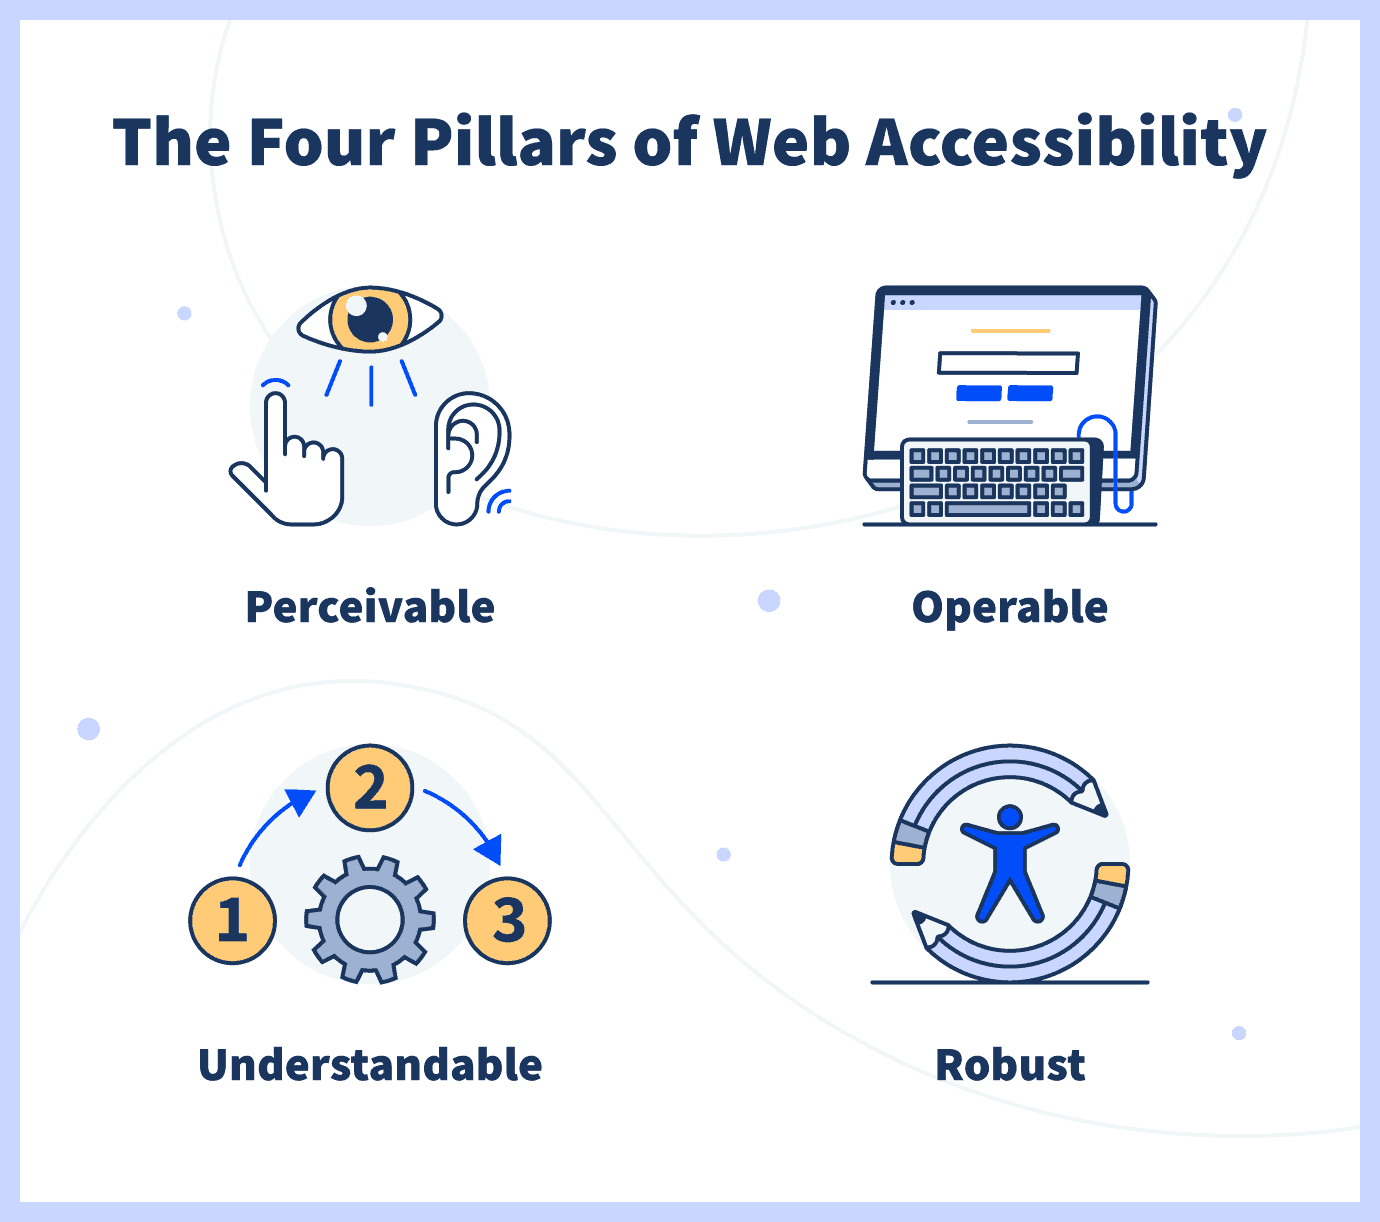 The Four Pillars of Web Accessibility: Perceivable, Understandable, Operable, Robust